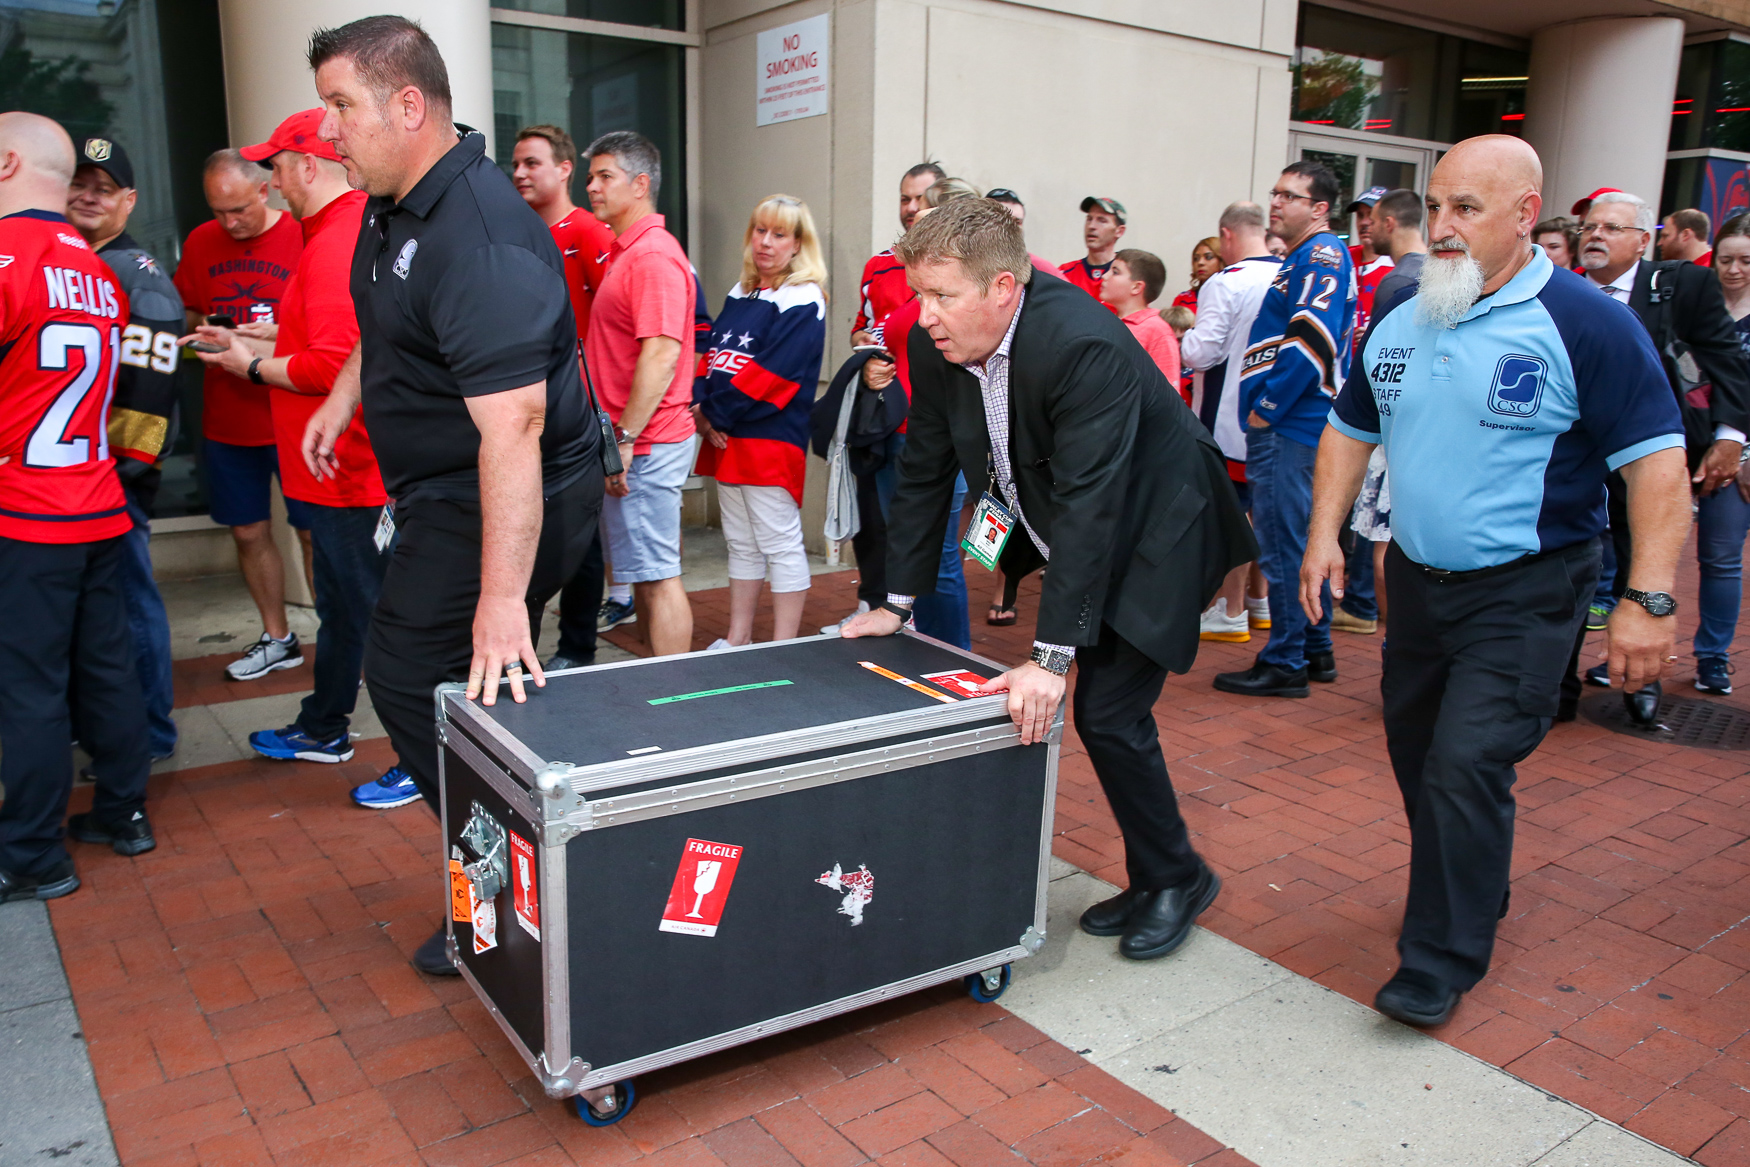 The Stanley Cup being taken into Capital One Arena. (Amanda Andrade-Rhoades/DC Refined)